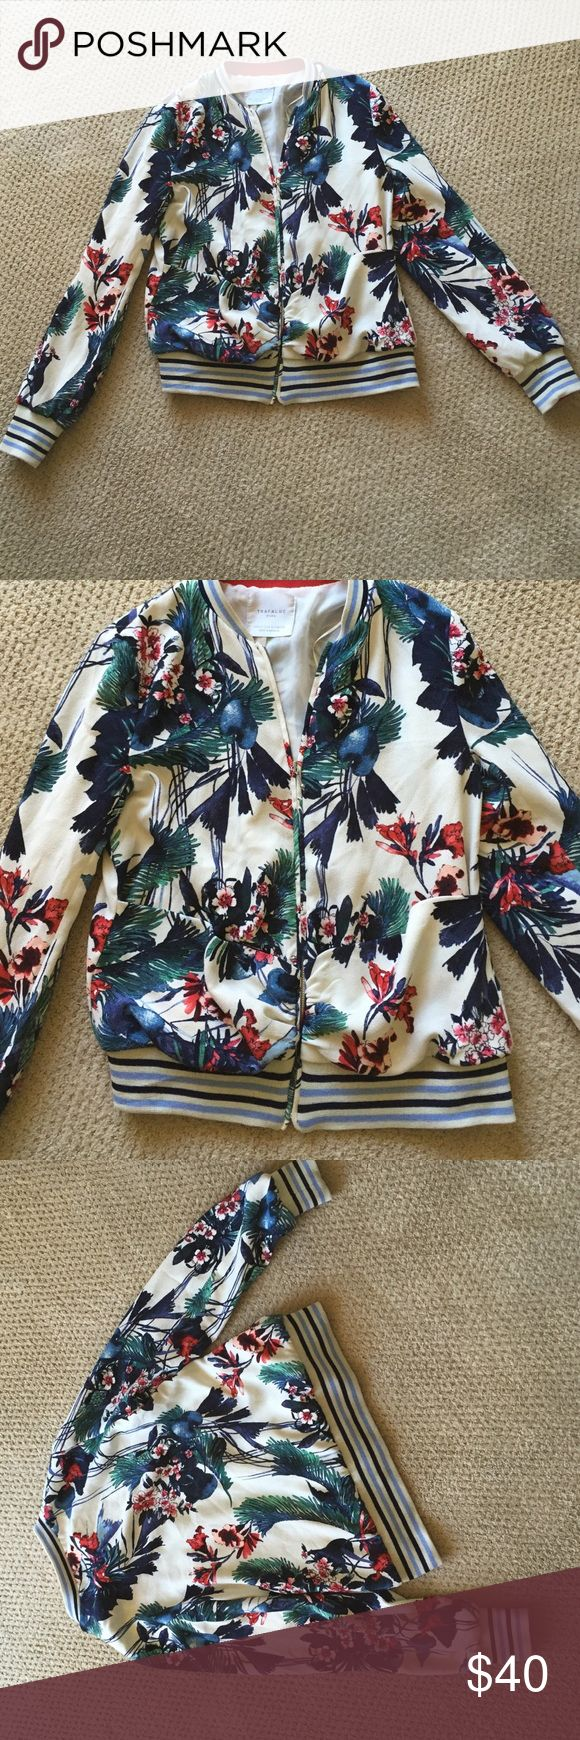 Small Zara Trafaluc Floral Zip Up Jacket Small and in good condition! This is a zip up jacket with two front pockets and elastic around the wrists and waist. Zara Jackets & Coats